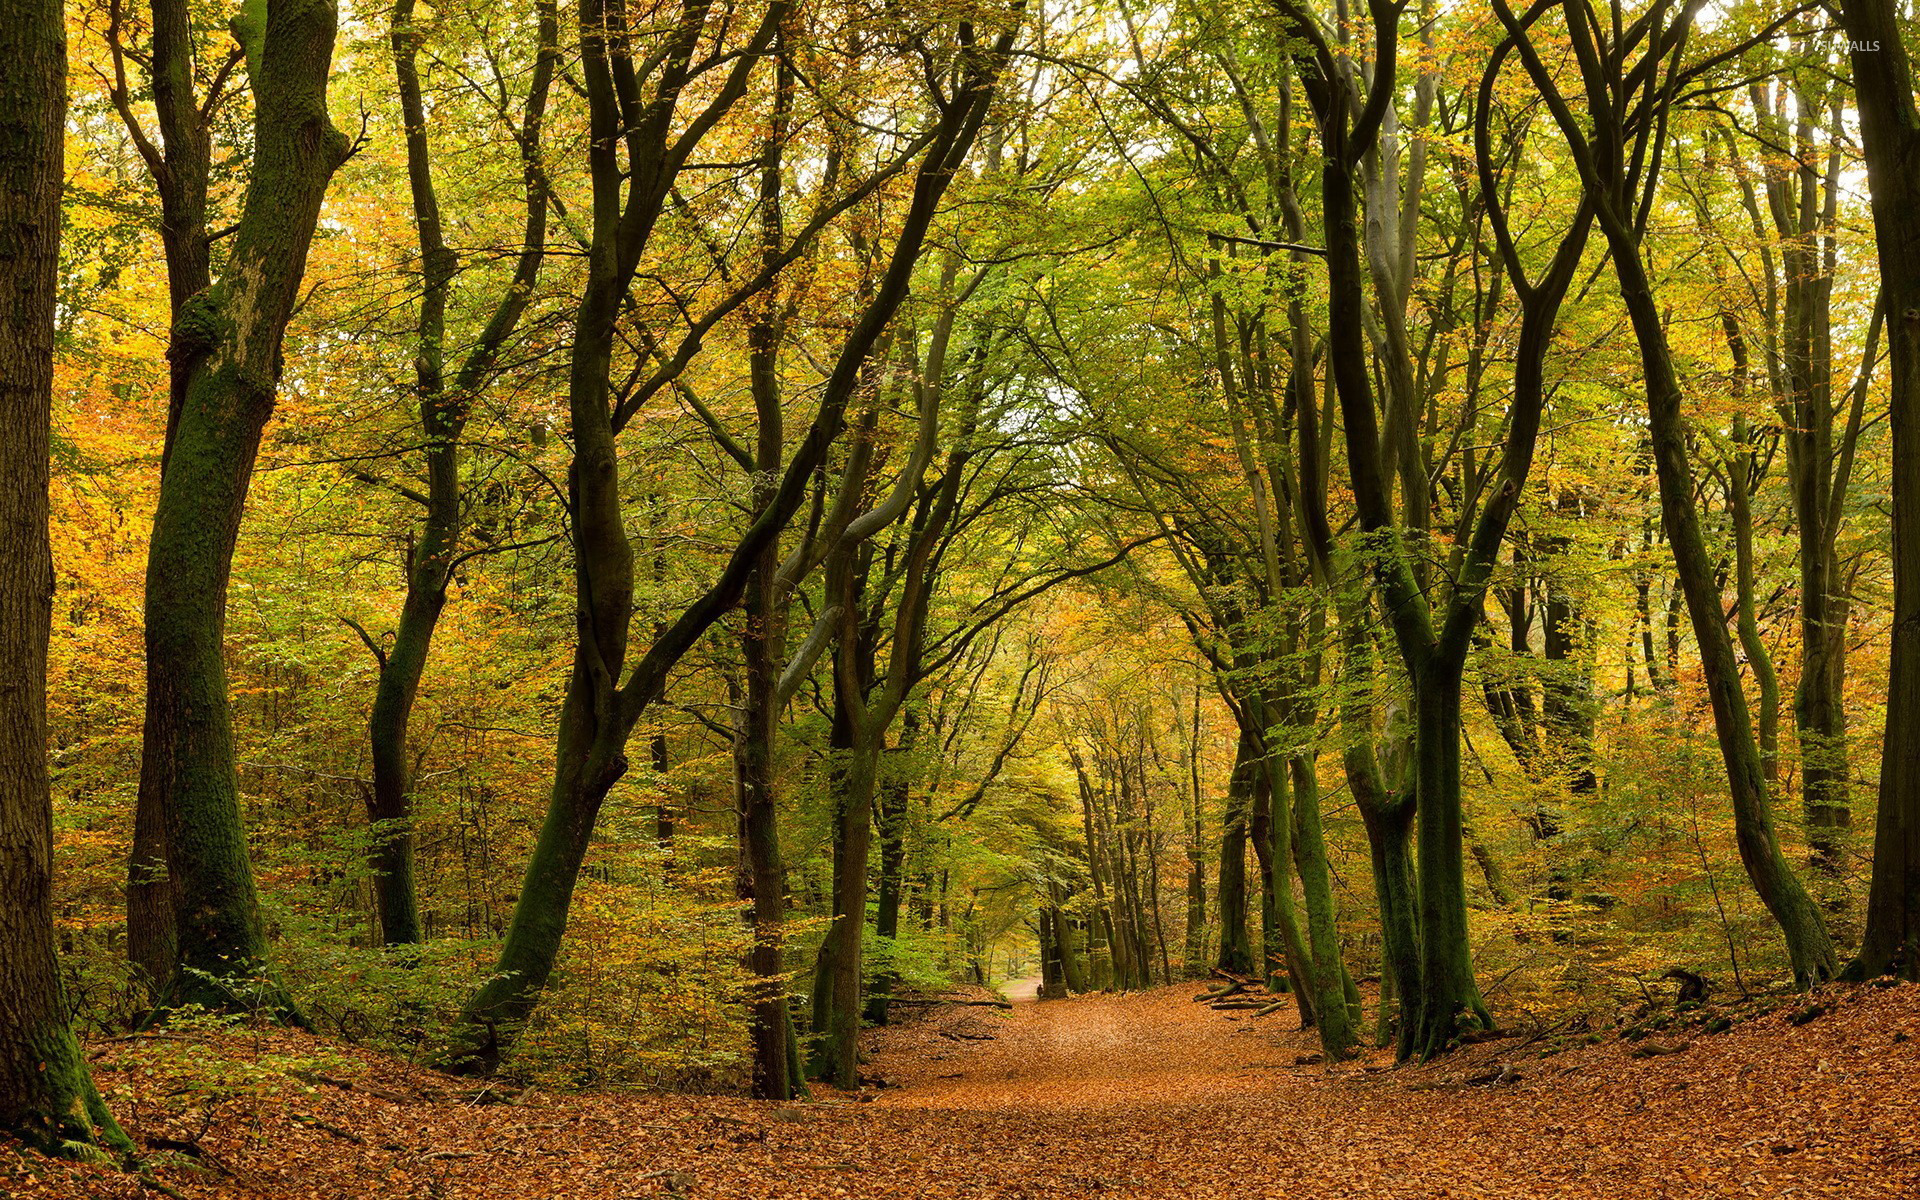 Leaves path through the autumn forest wallpaper  Nature wallpapers  38586